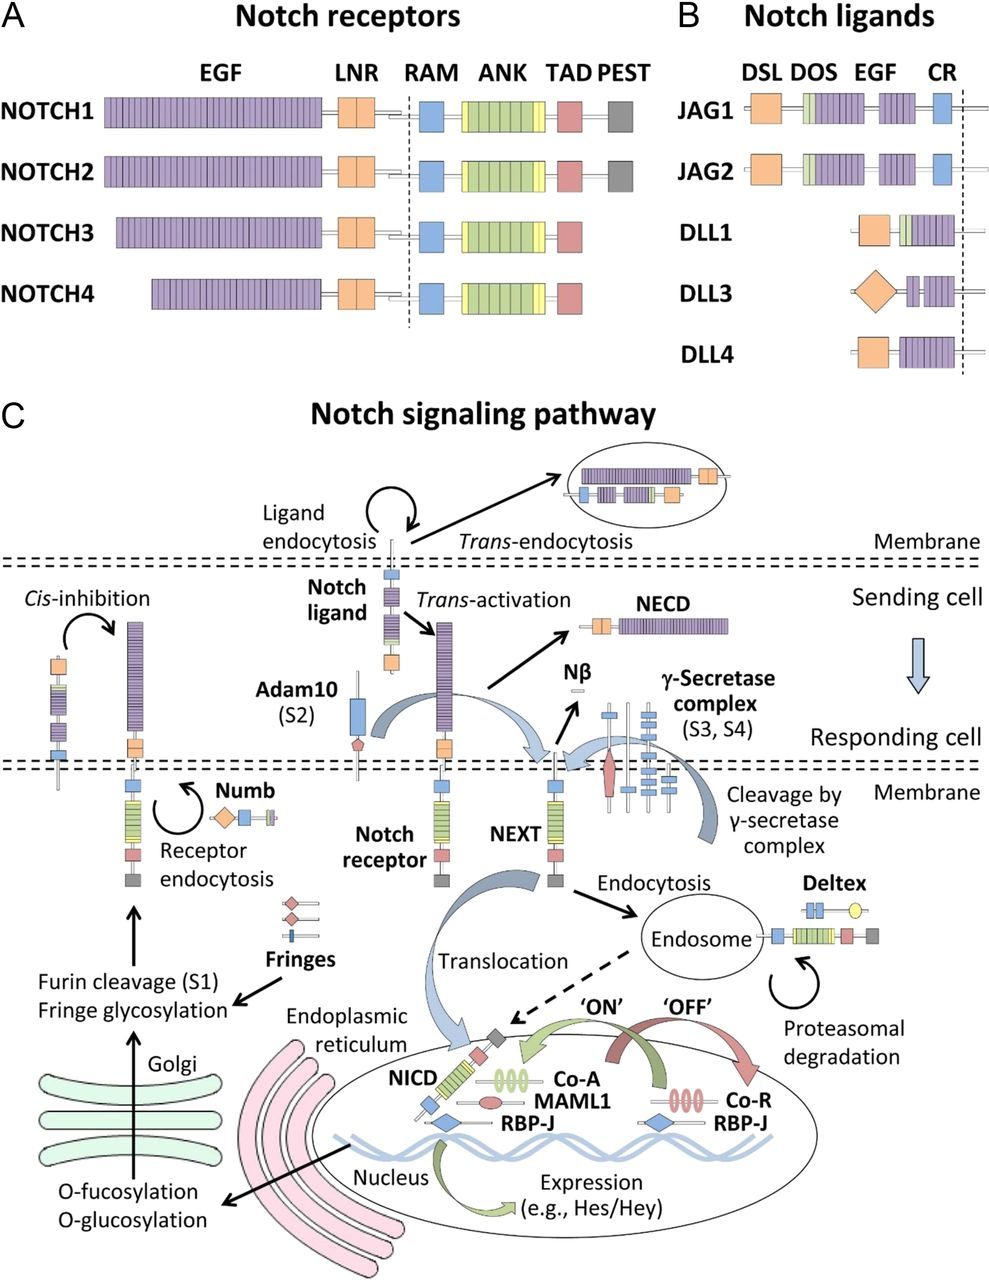 The role of Notch signaling in the mammalian ovary in